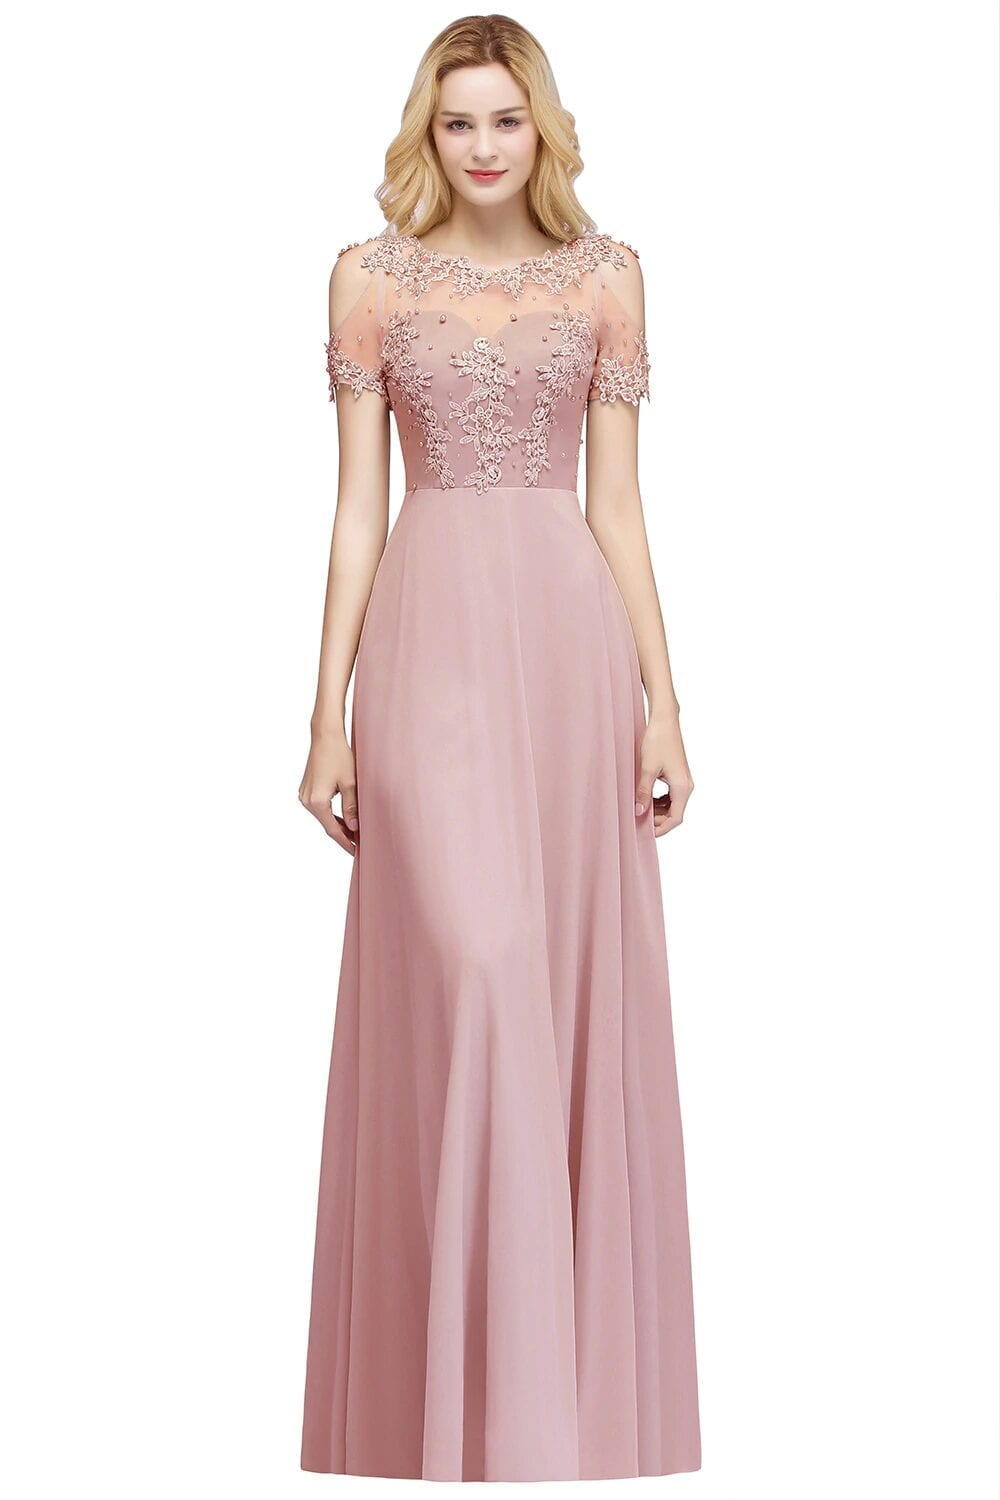 Scoop Neck Applique Chiffon Long Bridesmaid Dress